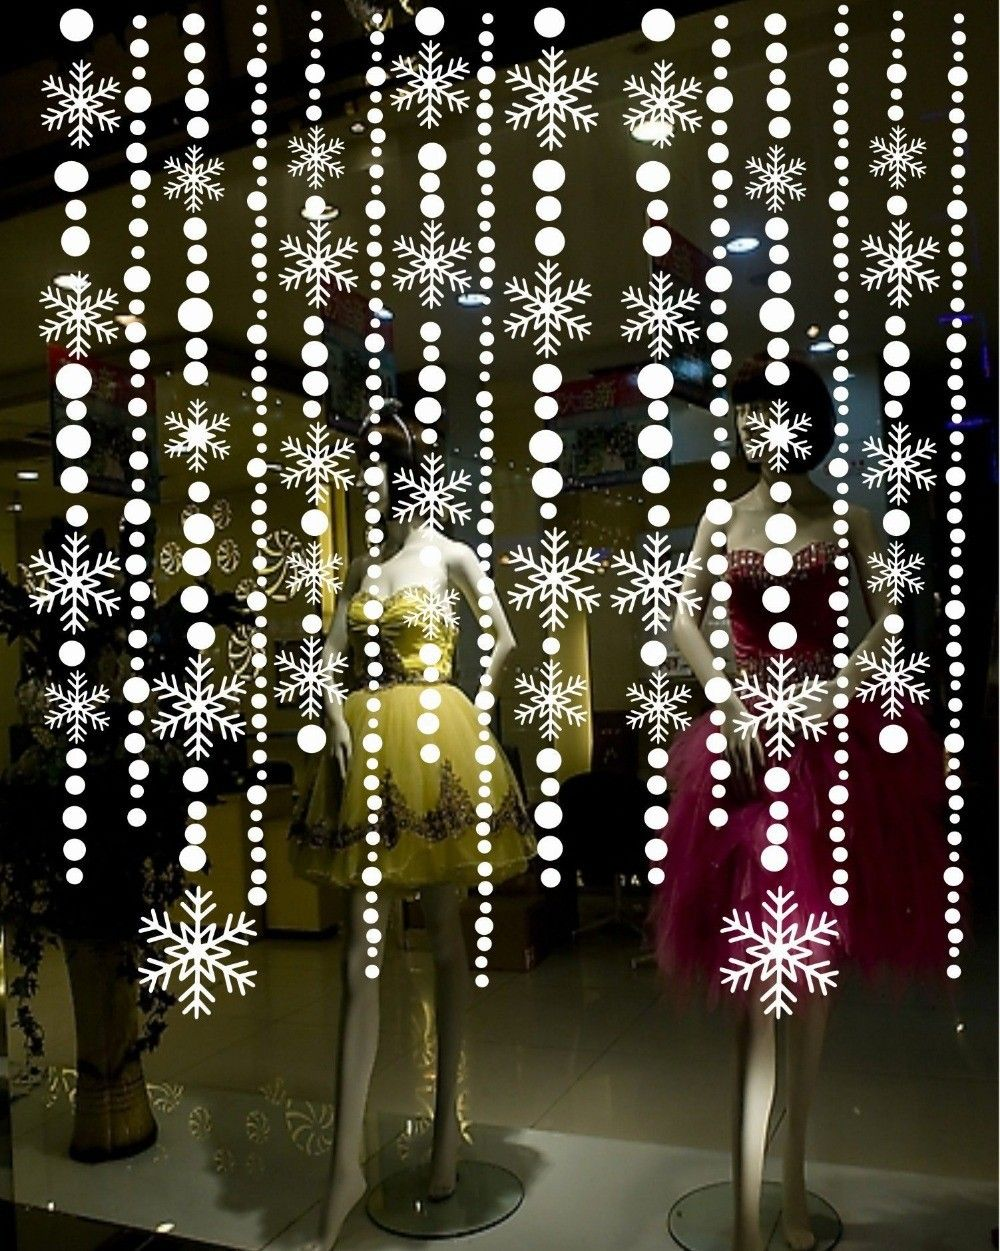 Possible example for frozen party http://www.aliexpress.com/item-img/Snowflake-Bead-Wall-Paper-Window-Decal-PVC-Curtains-for-Door-Glass-Stickers-Christmas-Home-Decore/1434636631.html